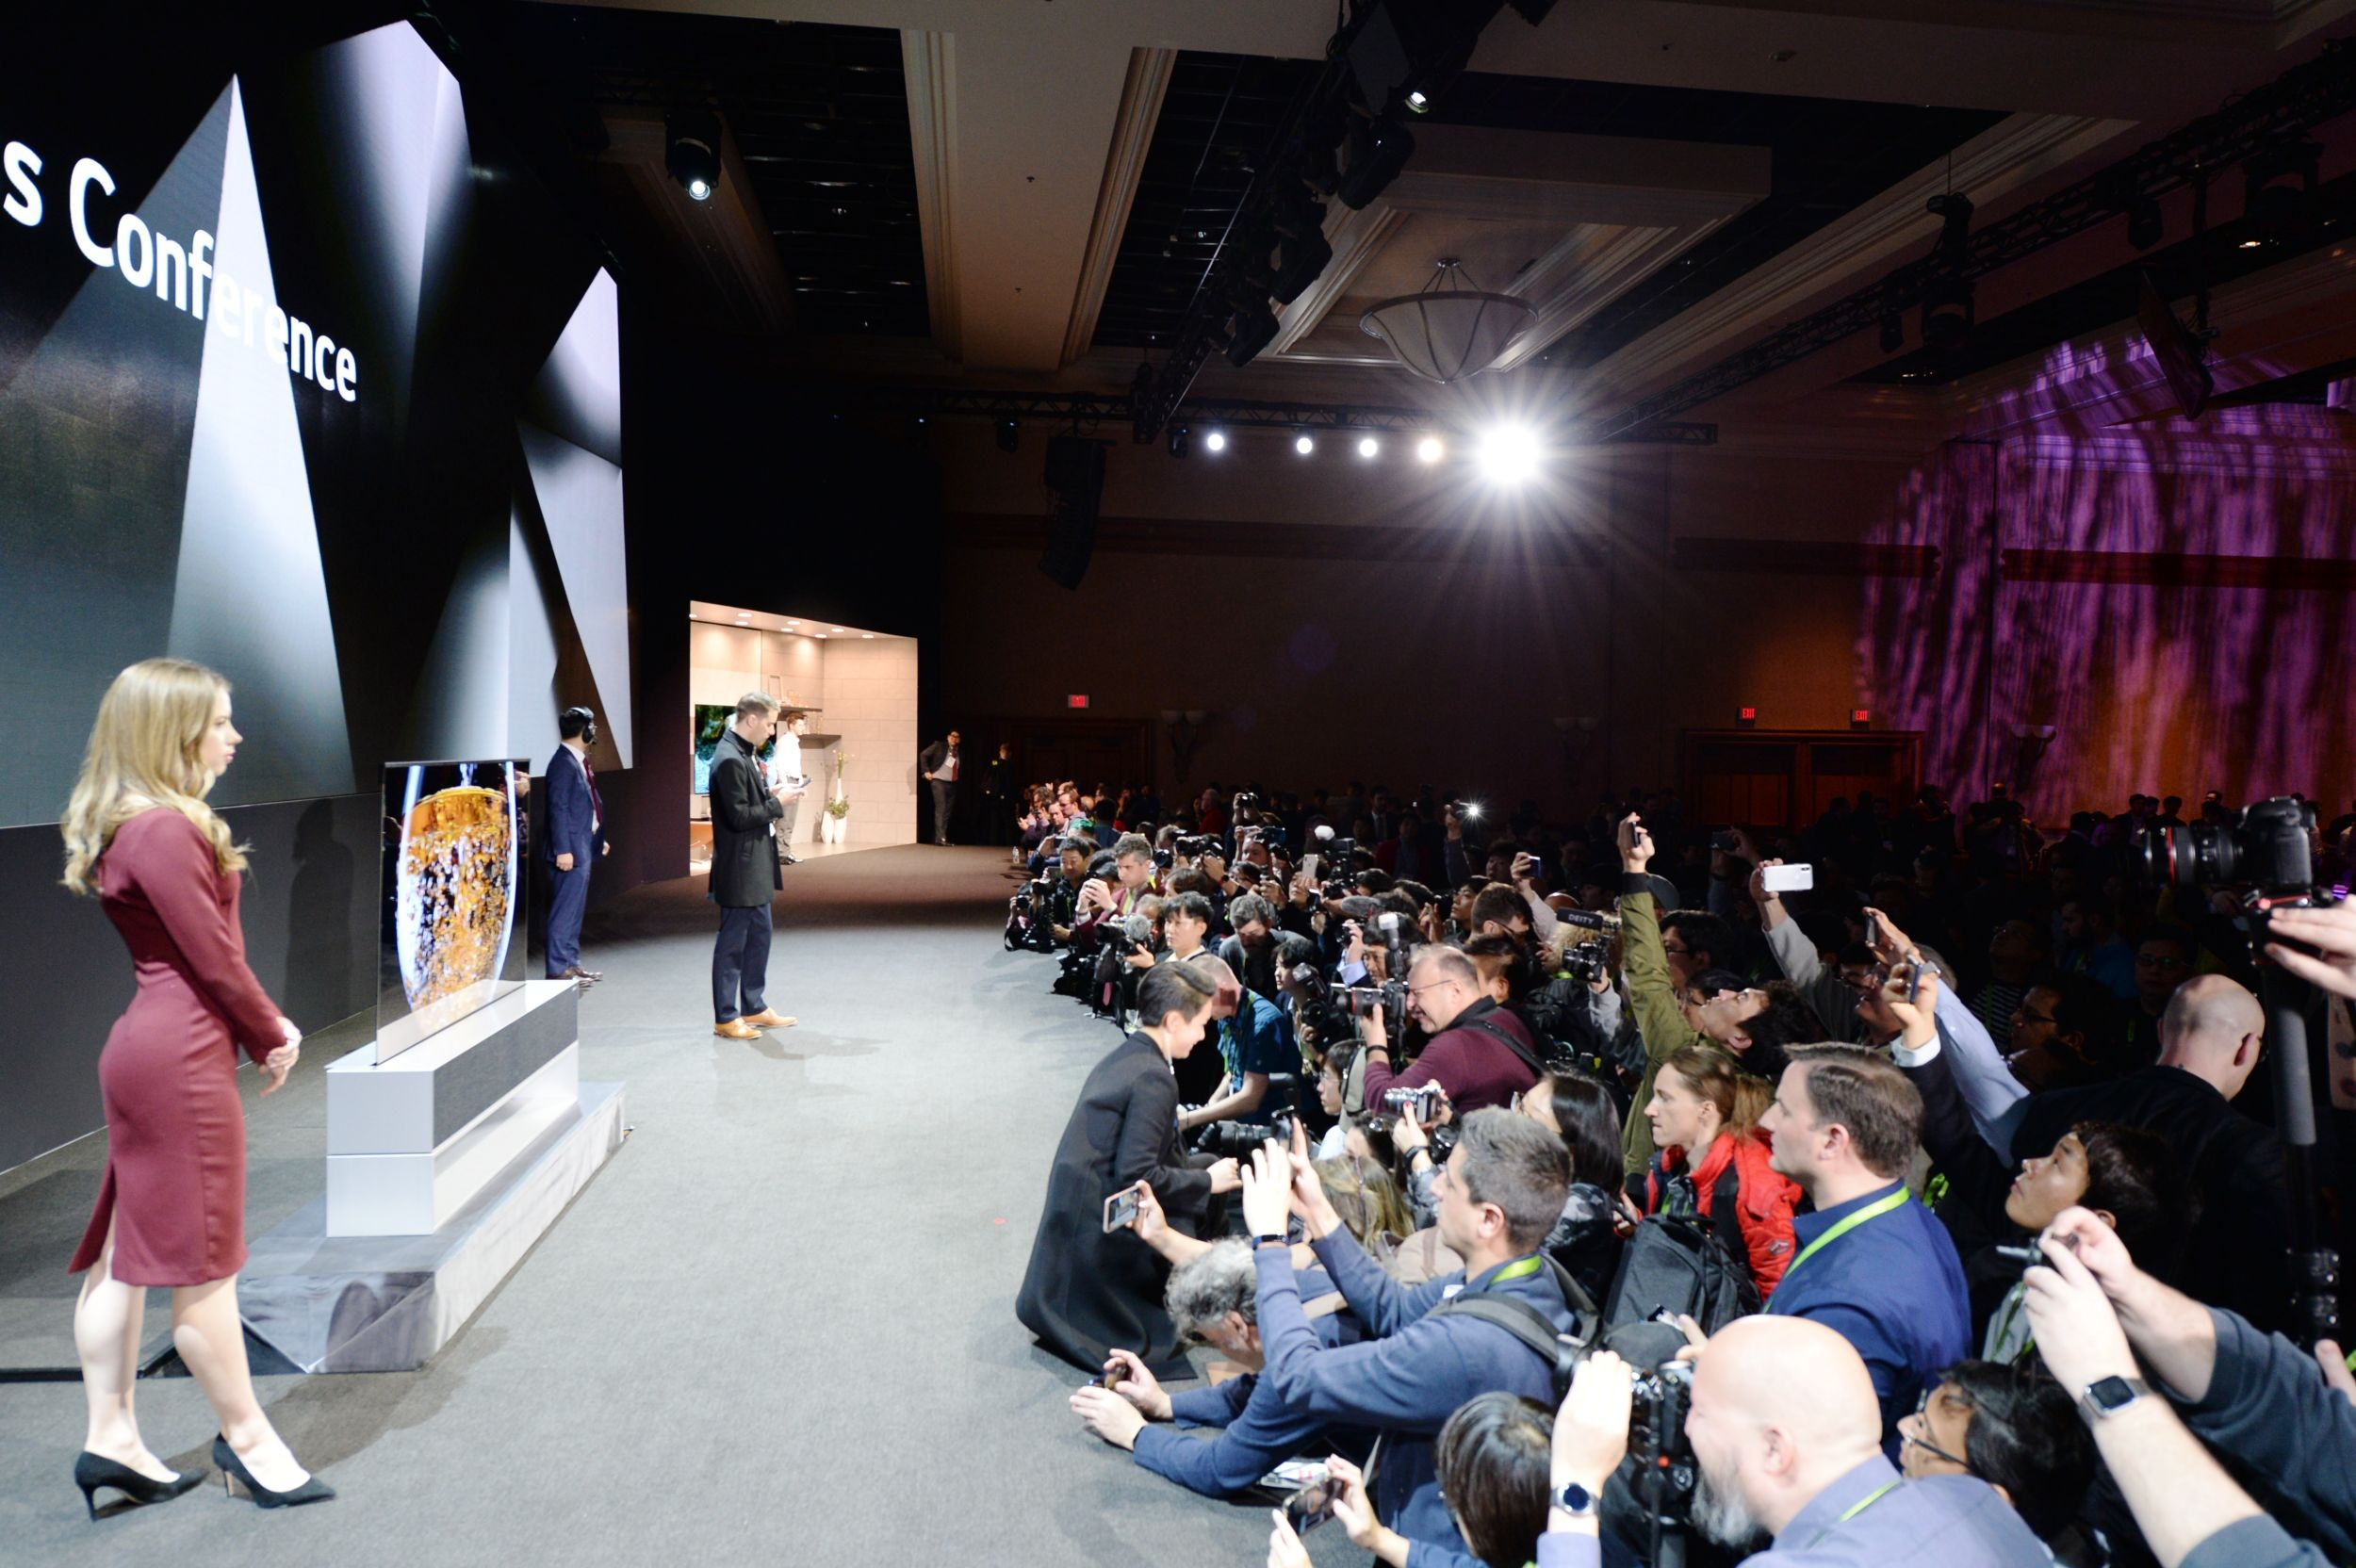 Side view of the CES 2019 LG Press Conference with a pair of male and female models onstage posing while reporters are recording and taking pictures